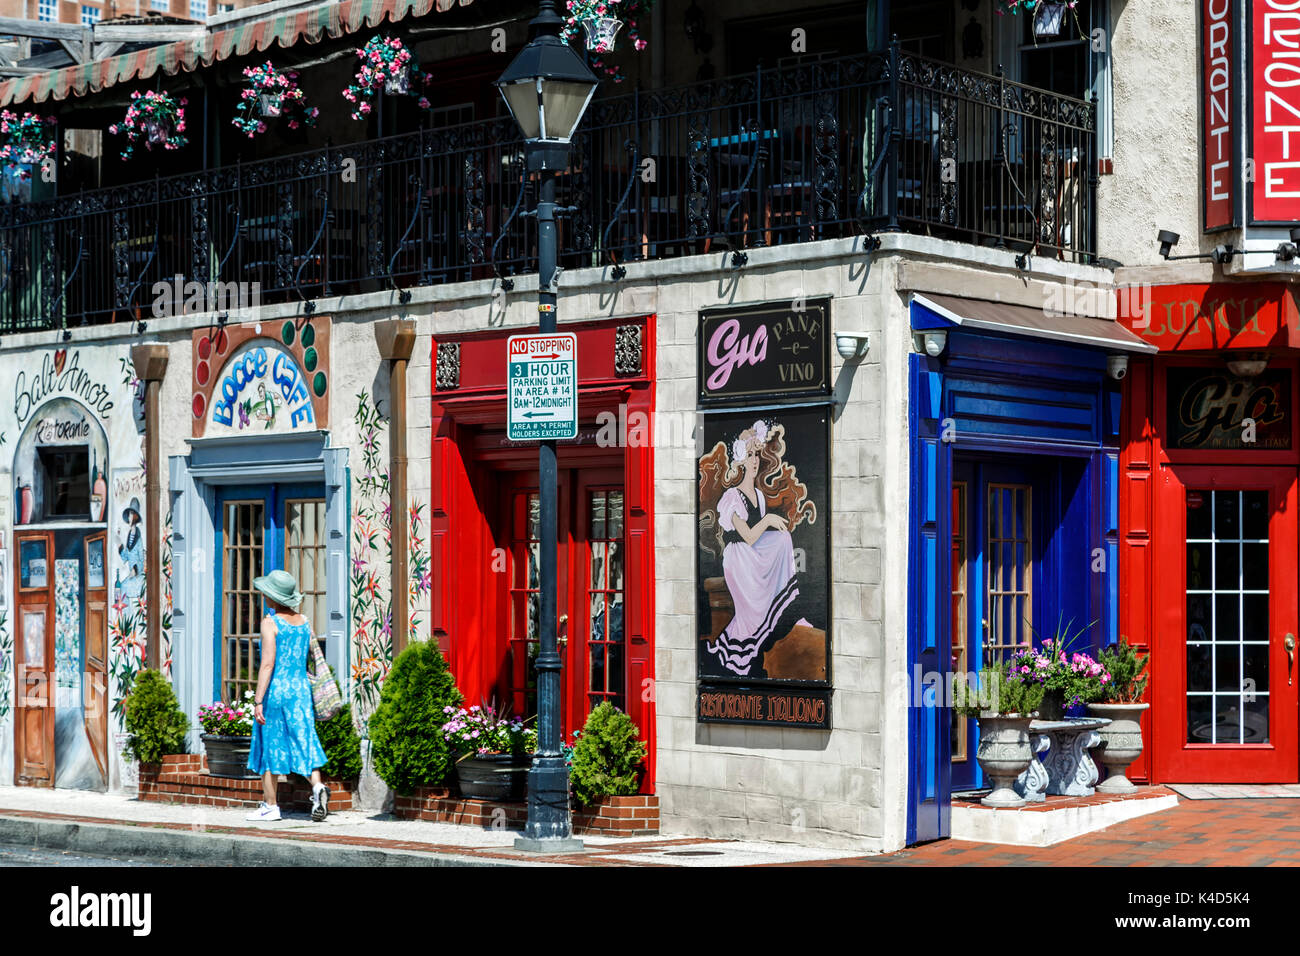 Woman walking in front of colorful Italian restaurant, Little Italy neighborhood, Baltimore, Maryland USA - Stock Image